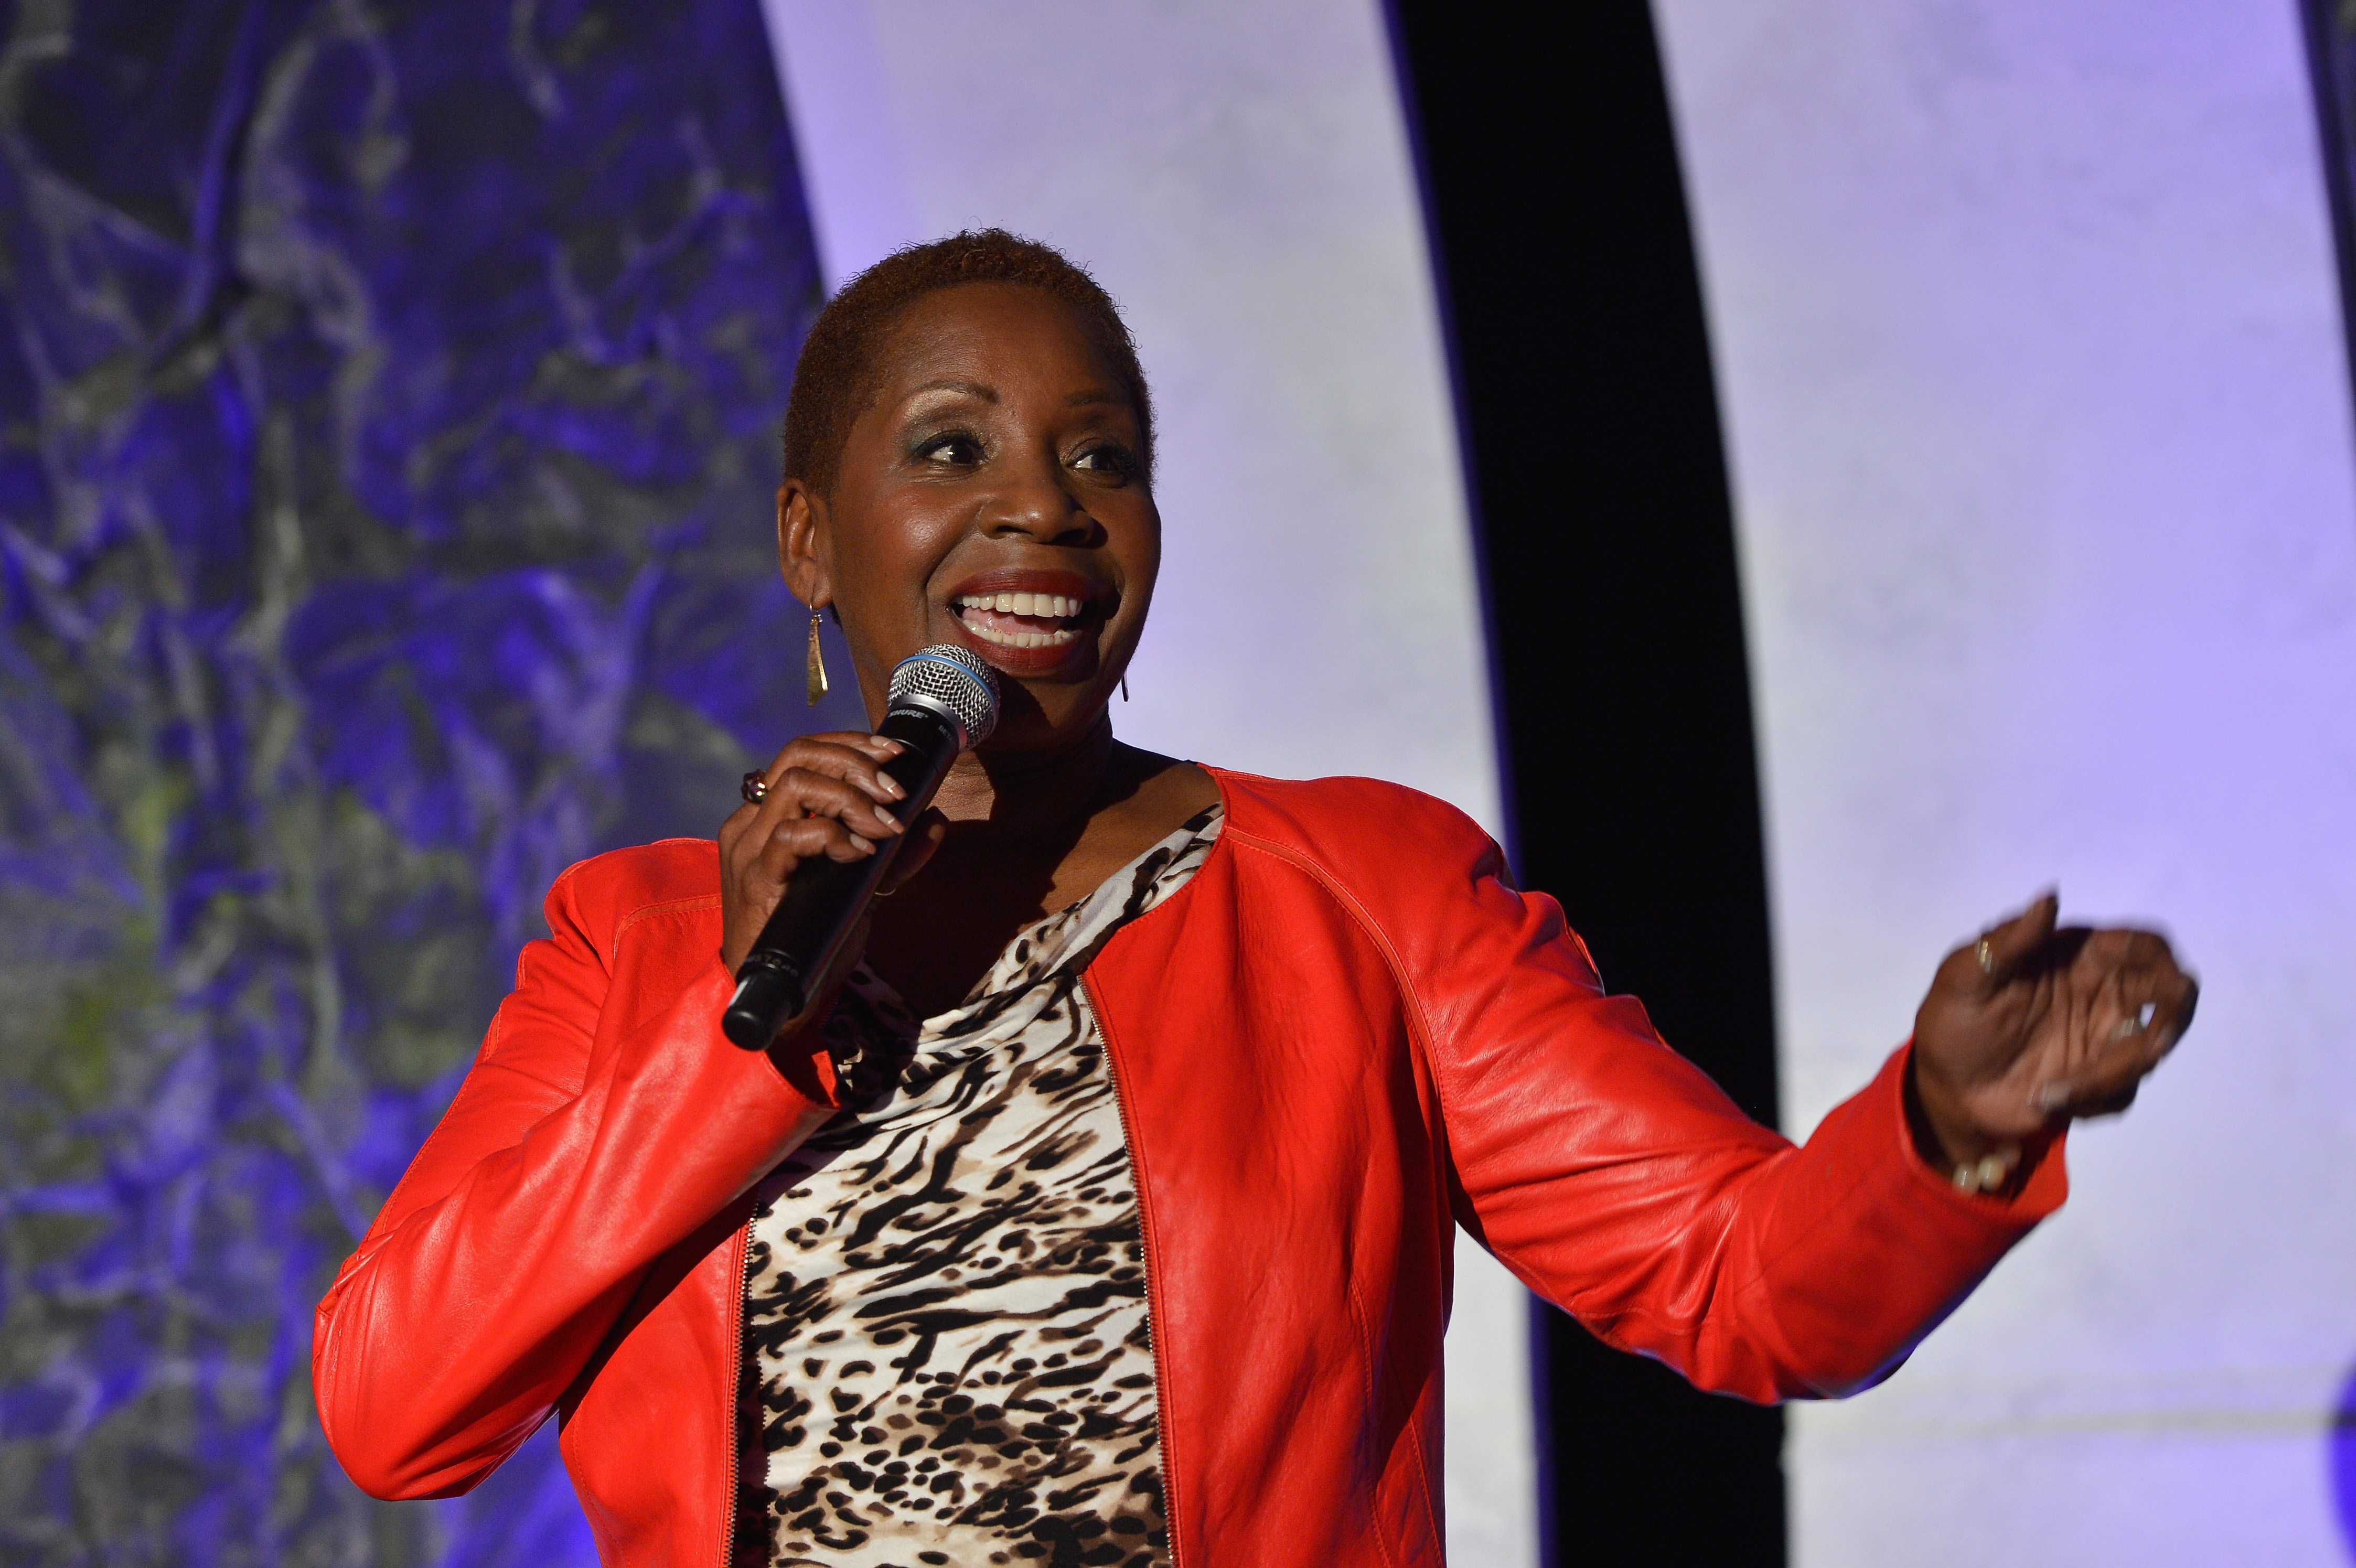 Iyanla Vanzant in a red jacket speaking at a conference.